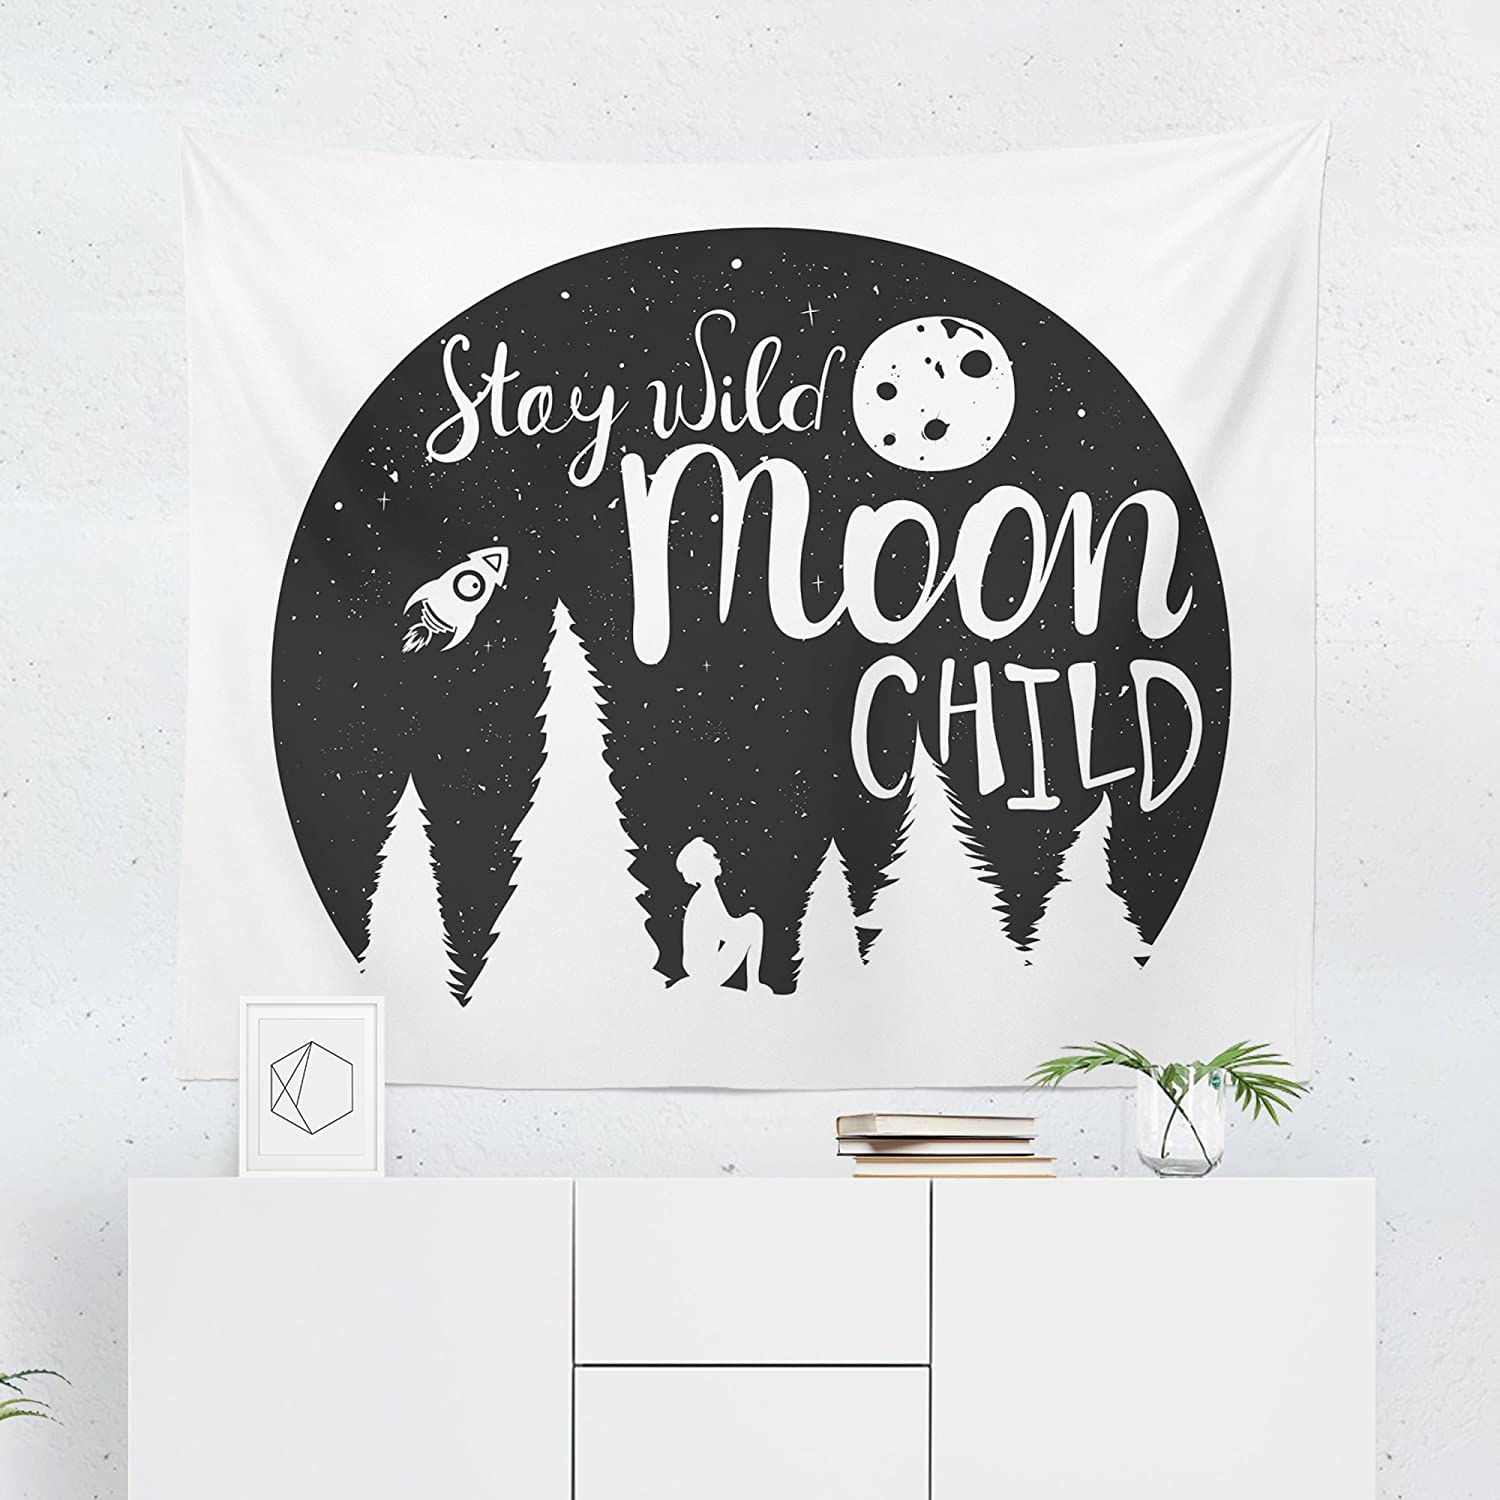 Stay Wild Moon Child Tapestry - Kids Space Rocket Wanderlust Wall Tapestries Hanging Décor Bedroom Dorm College Living Room Home Art Print Decoration Decorative - Printed in the USA